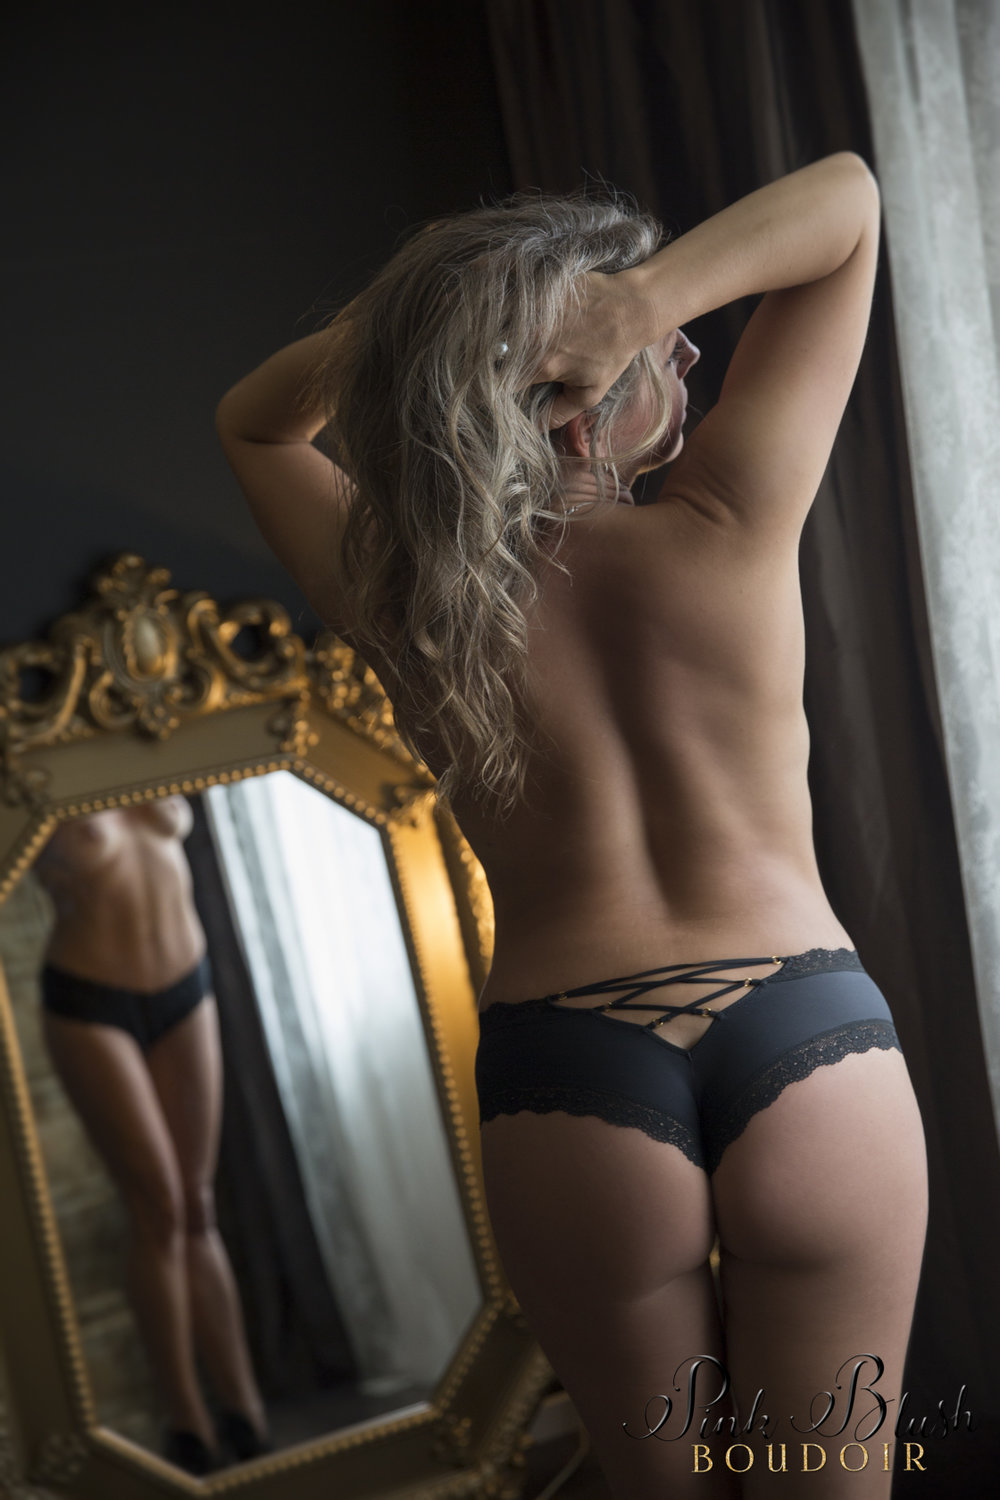 boudoir photos, a topless woman standing in front of a mirror